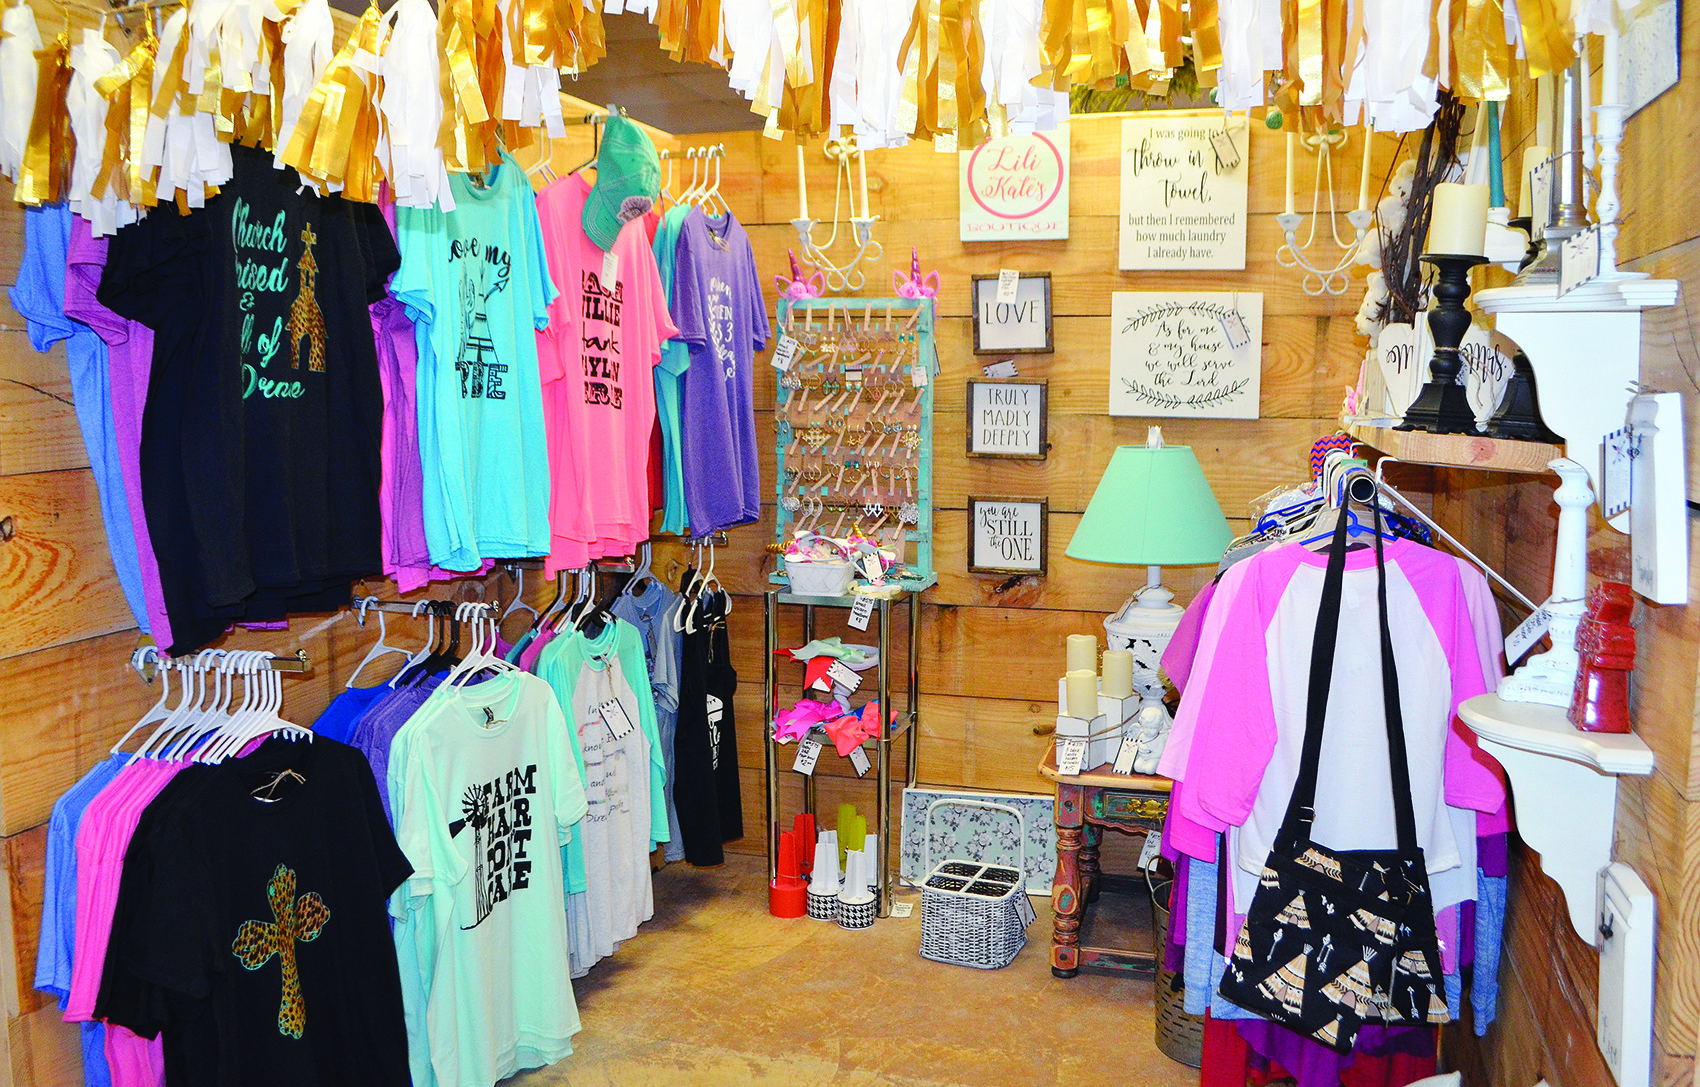 There are a few boutique clothing booths at The Tin Cup Market.